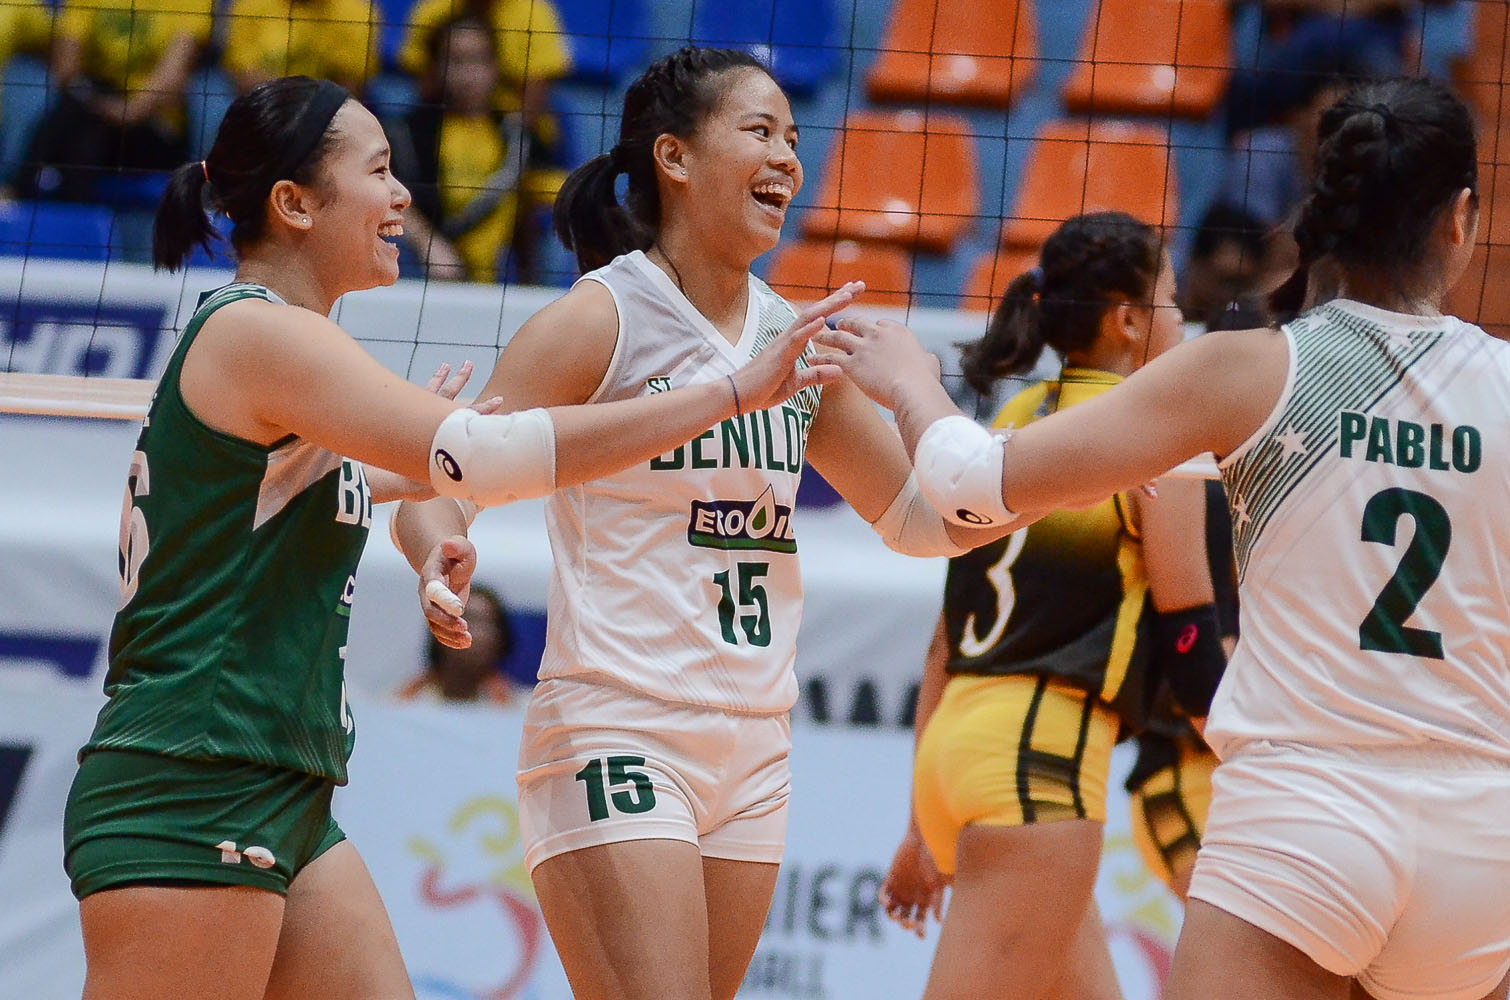 Tiebreaker Times St. Benilde tears apart injury-riddled Arellano for third win AU CSB News PVL Volleyball  Saint Benilde Women's Volleyball Obet Javier Mycah Go Klarisa Abriam Jerry Yee Gayle Pascual Charm Dino Arellano Women's Volleyball 2019 PVL Season 2019 PVL Collegiate Conference